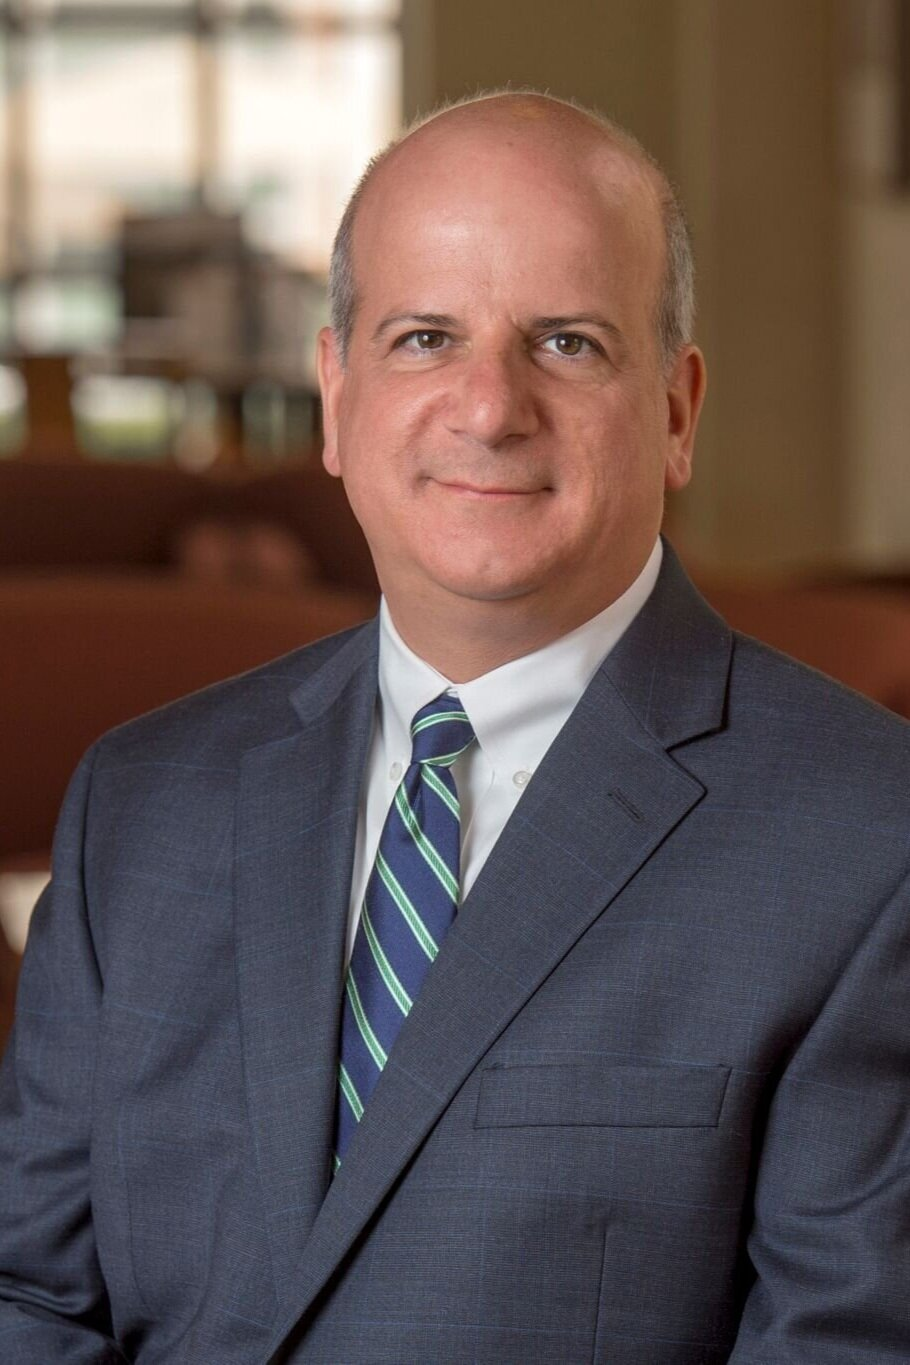 Carl Martellino | University of Southern California   Associate Vice Provost for Student Affairs, Career Services